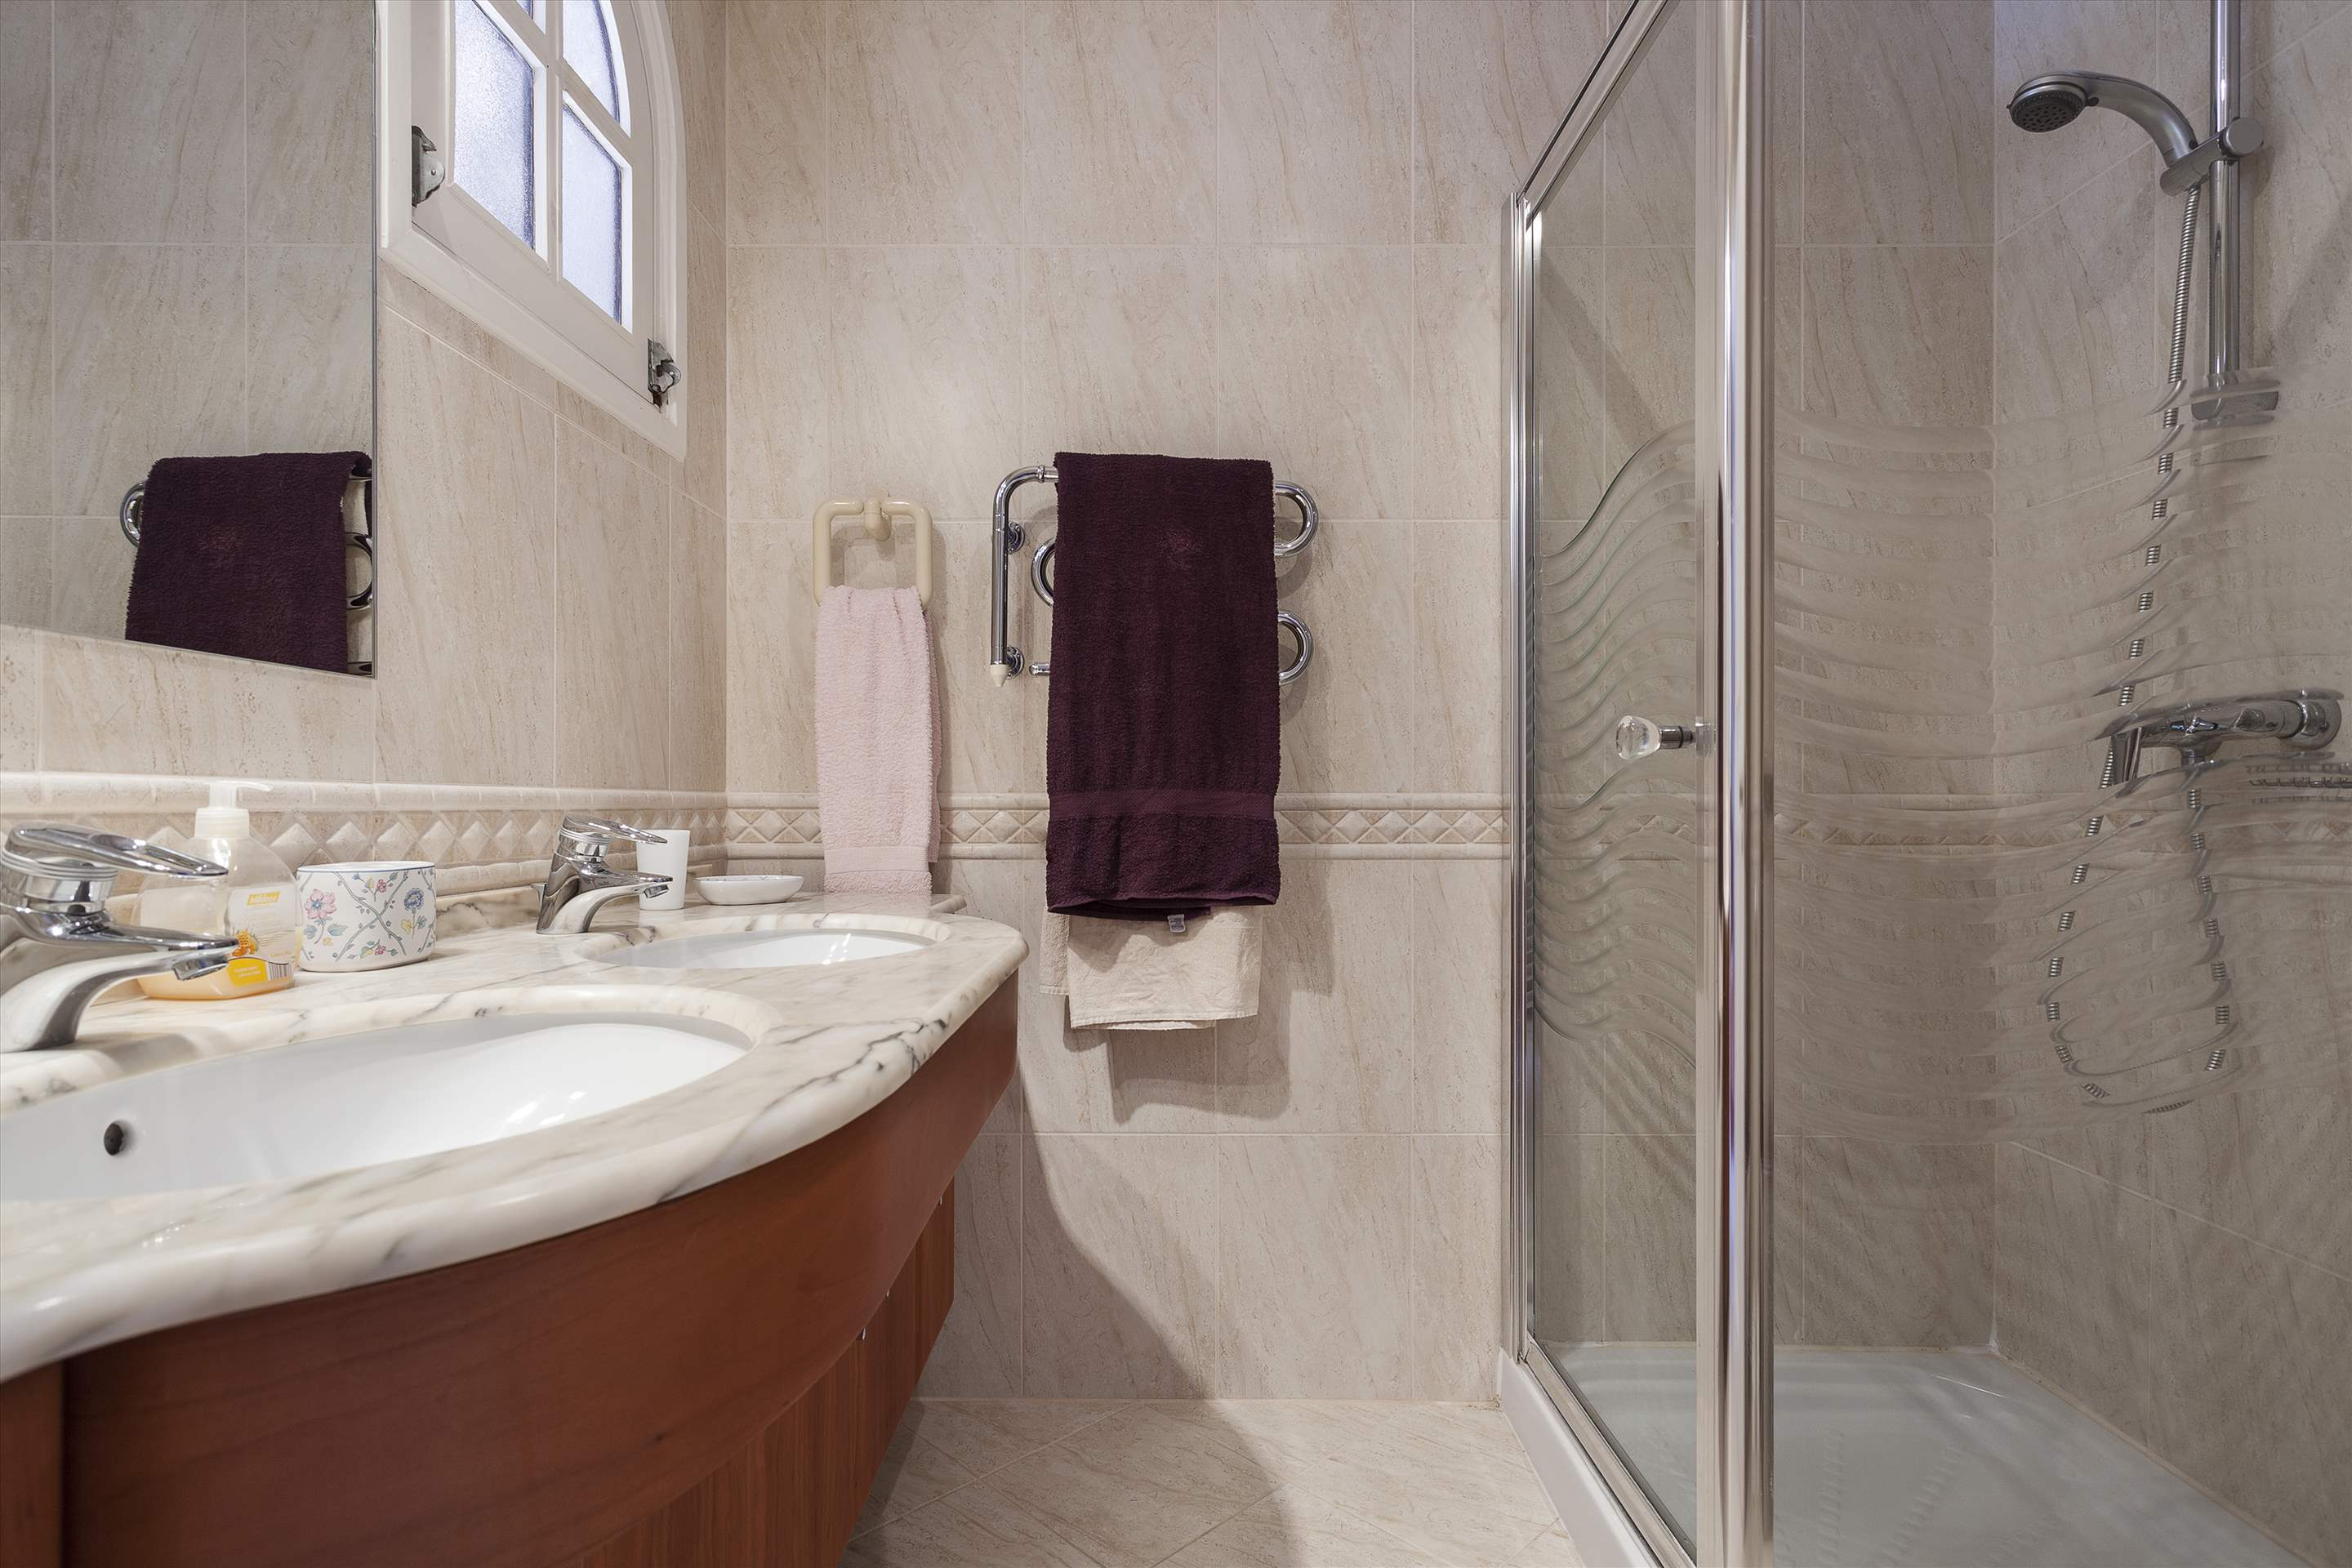 Villa Lake View, 4 bedroom villa in Quinta do Lago, Algarve Photo #19